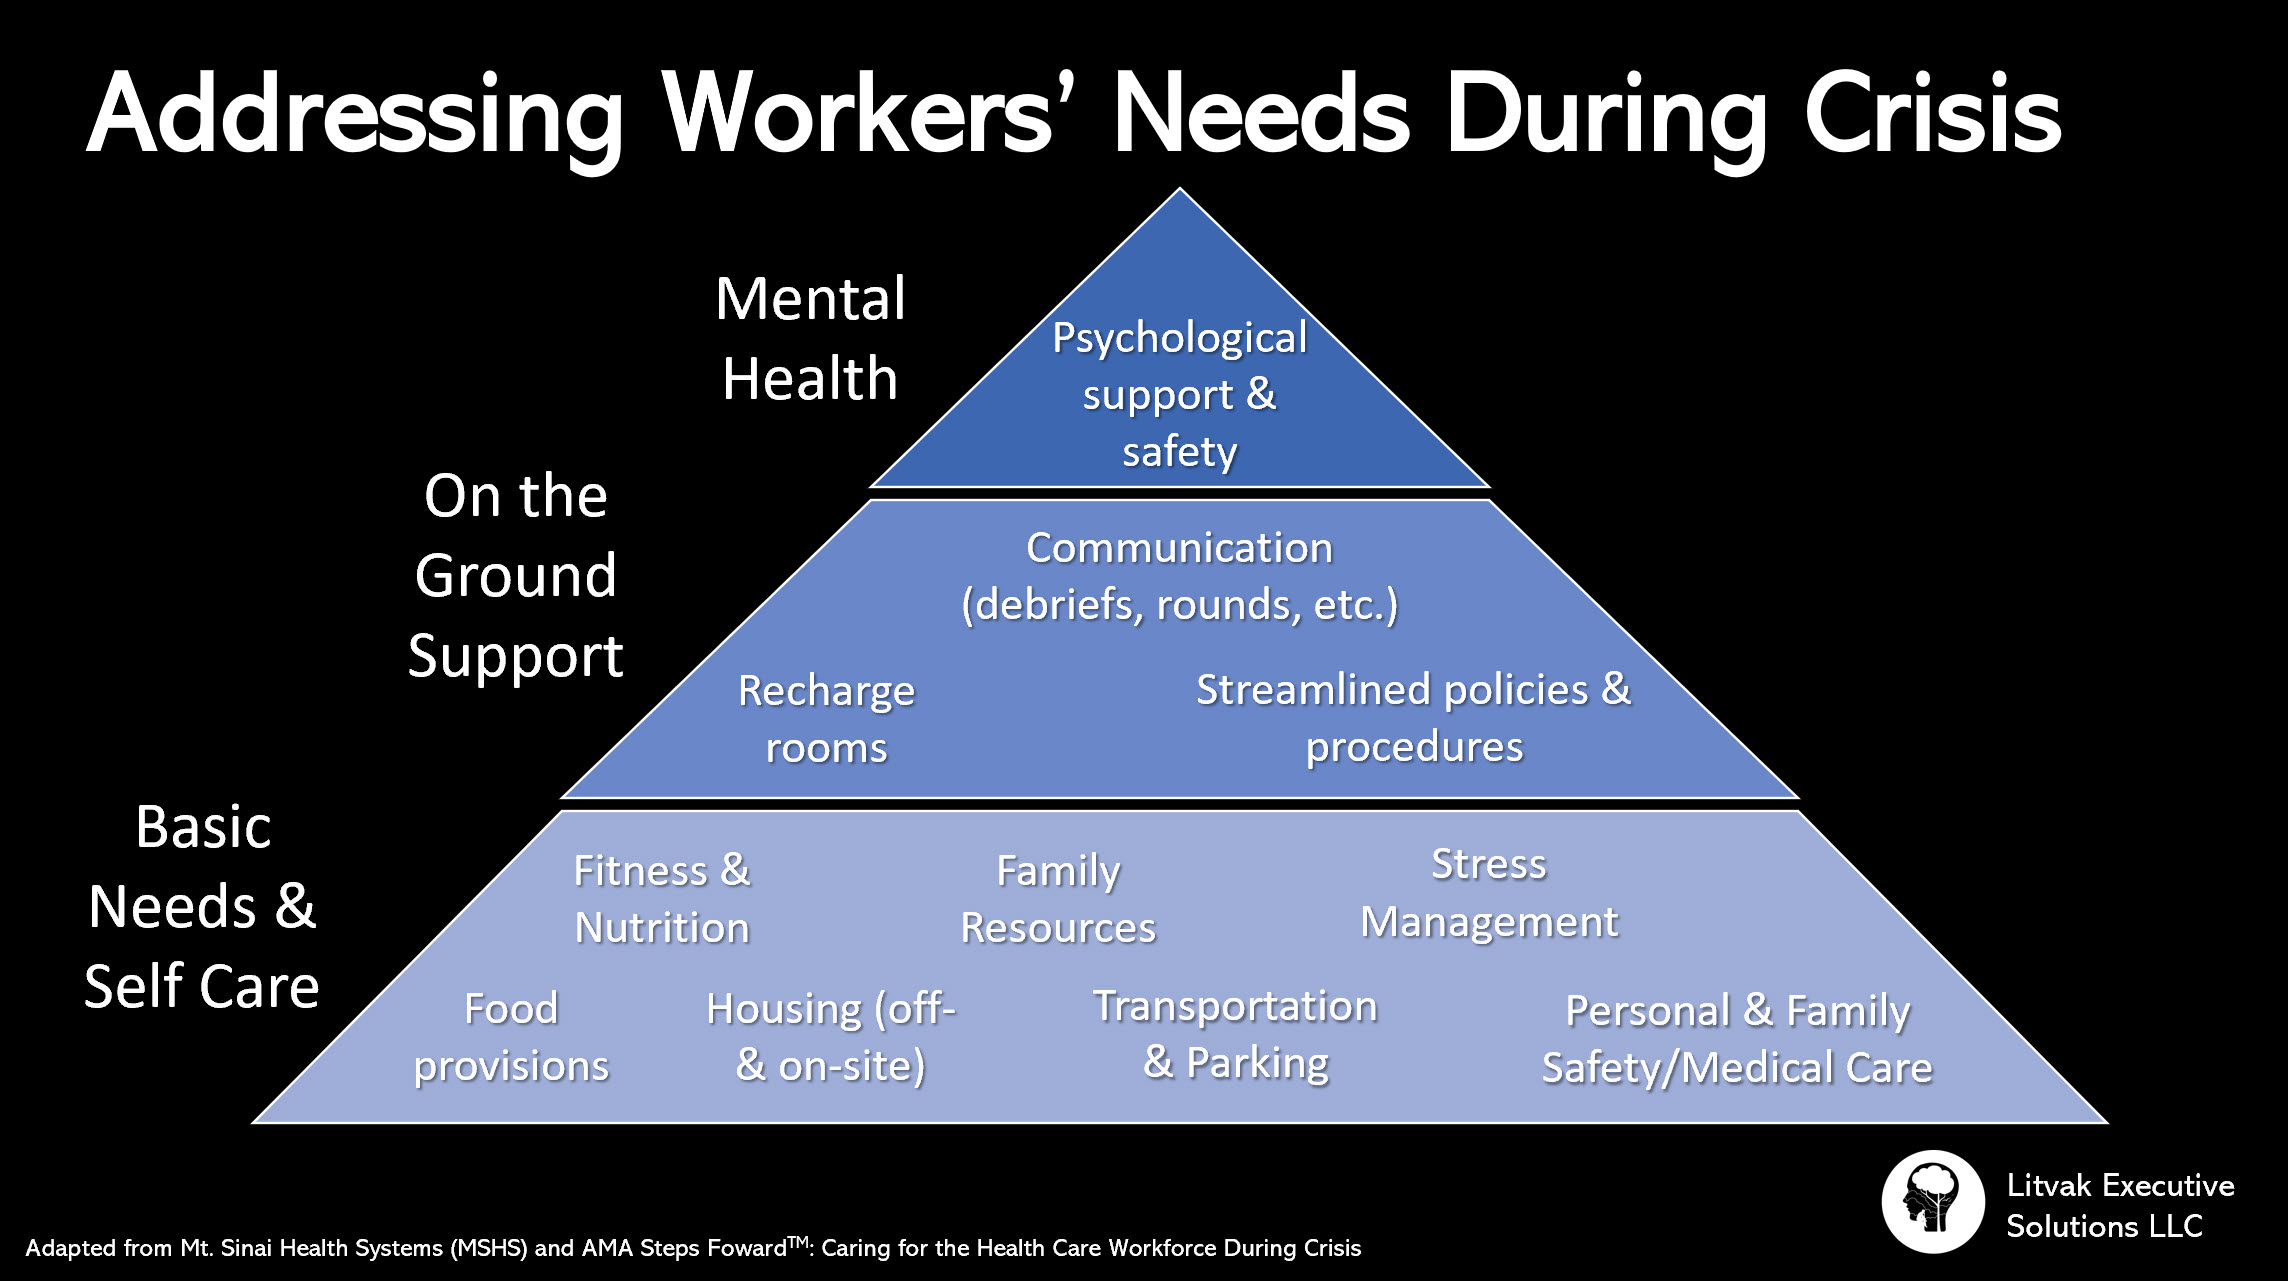 Hierarchy of Workers' Needs During a Crisis